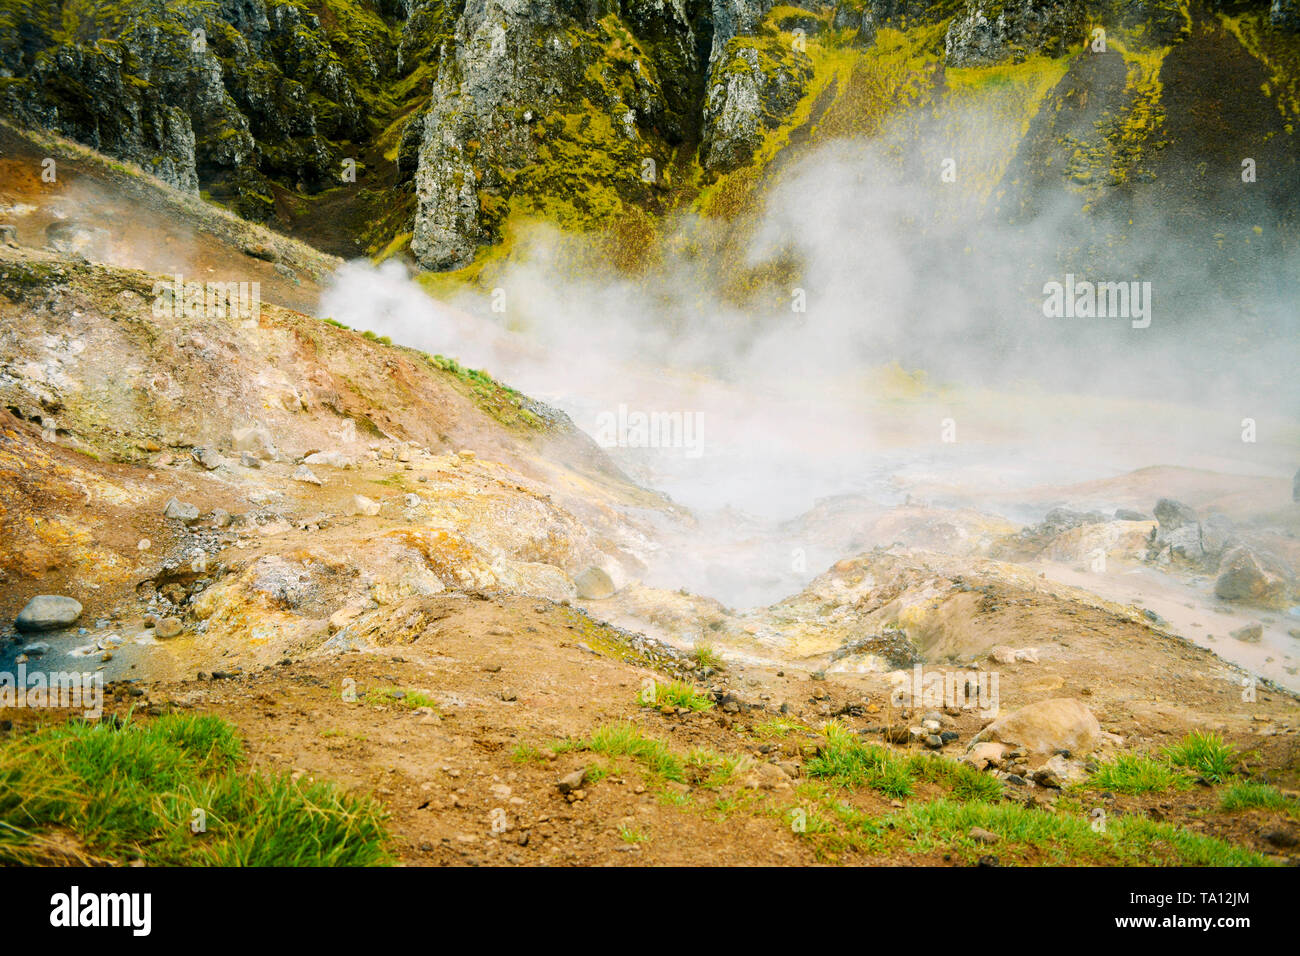 Fumarole field in Namafjall, Iceland. Geothermal beauty landscape. - Stock Image